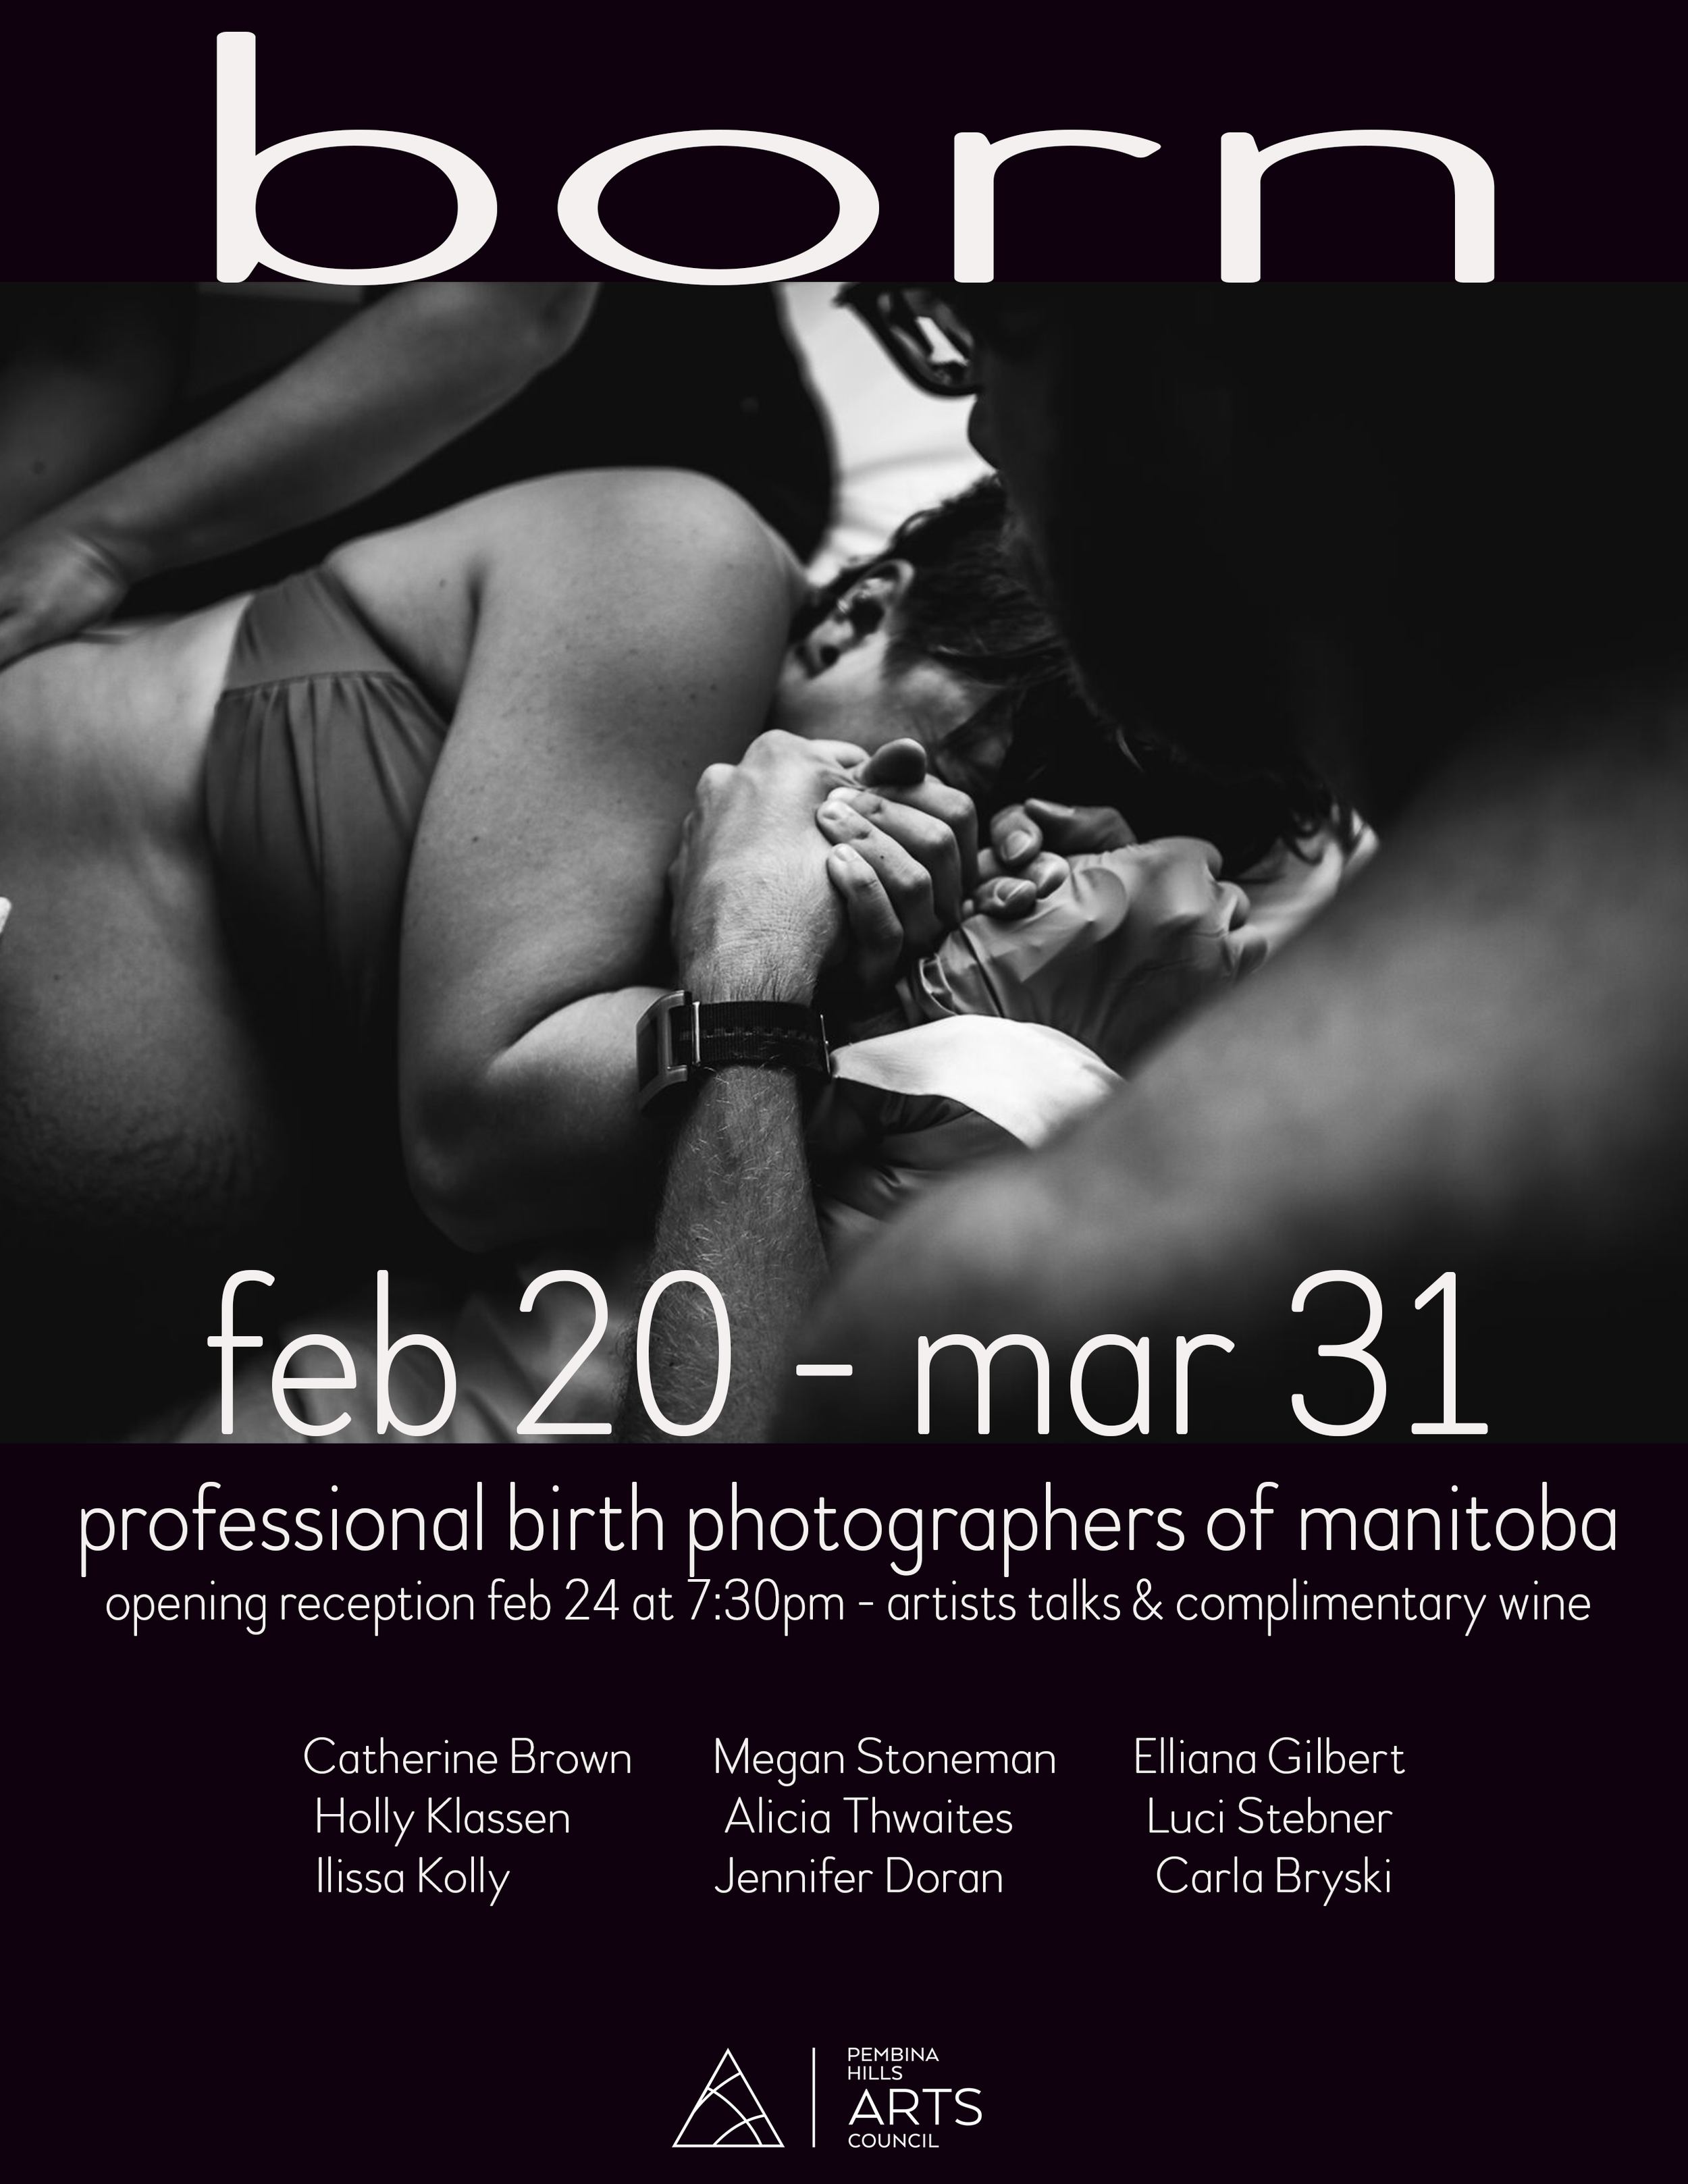 │ BORN │ - A Photographic Celebration of Birth in Manitoba - Manitoba photographers come together to showcase the beauty of birth in our provinceBeing born is one thing that every human on our planet has in common. As both mothers ourselves, as well as professional photographers, we have joined forces to celebrate the beauty and strength that is the welcoming of new life. We are fueled by our desire to normalize birth in a society that tends to hush open discussions surrounding it. With our art and imagery we hope to showcase the indescribable beauty that occurs where all of our journeys begin; birth.Being held at the Pembina Hills Art Council located at 352 Stephen Street in Morden MB, │BORN│ will run from February 20th through March 30th 2018. The opening reception will take place on Saturday February 24th at 7:30pm, with an artist talk at approx. 8:00pm. We are honoured to invite you to join us in celebrating this unique and powerful exhibit.It is an honour and a privilege every time we are trusted to enter into a family's birth space to document their transition into parenthood (or parenthood again). We are now humbled to be able to share some of these incredible moments with all of you.